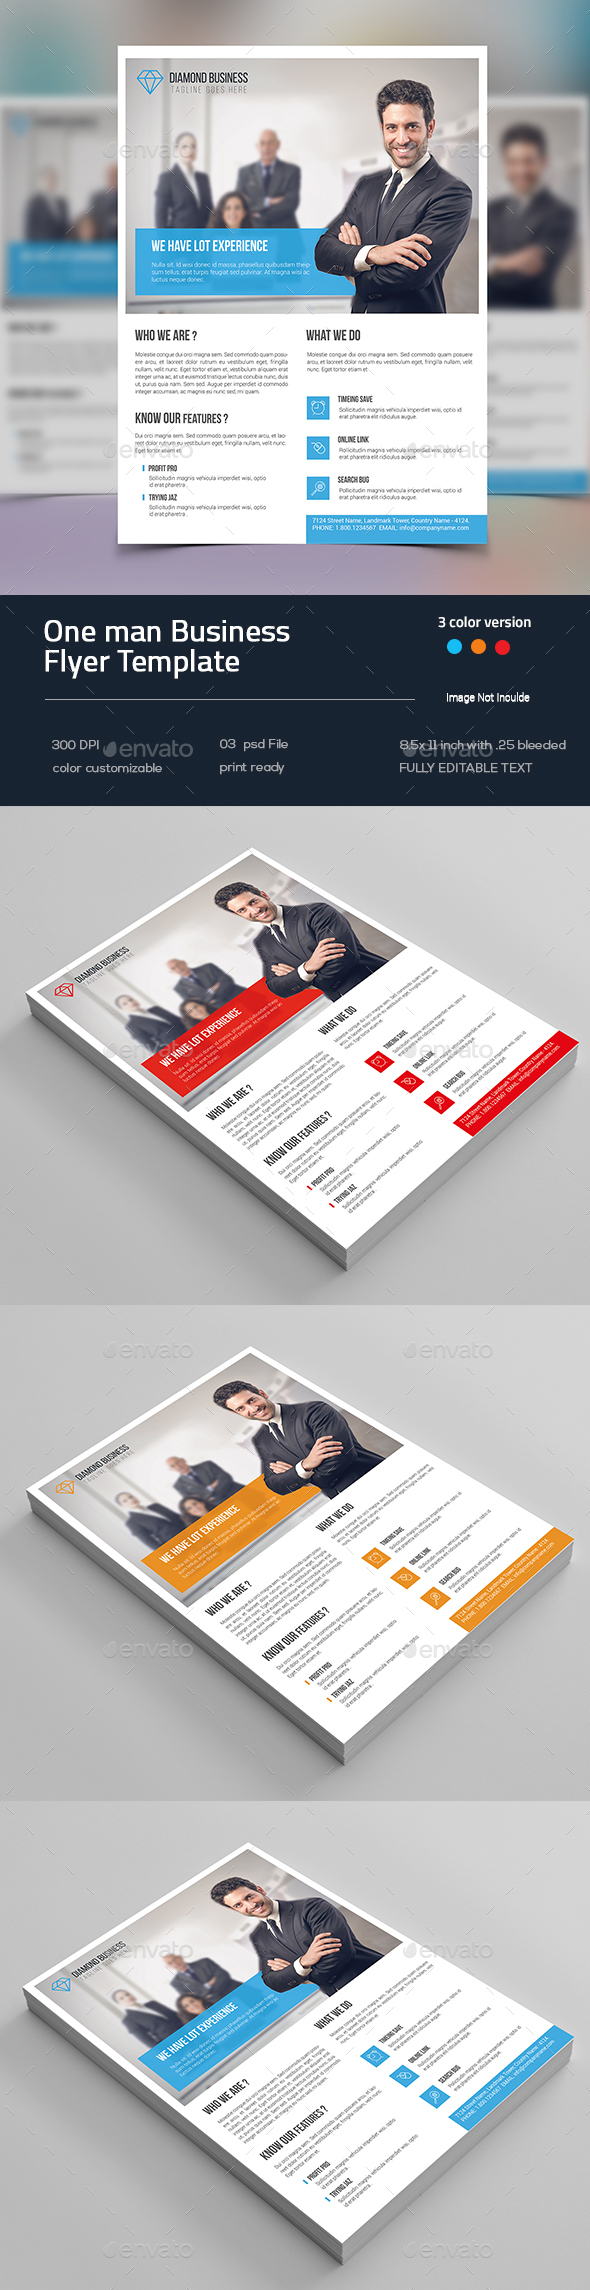 One man Business Flyer - Flyers Print Templates